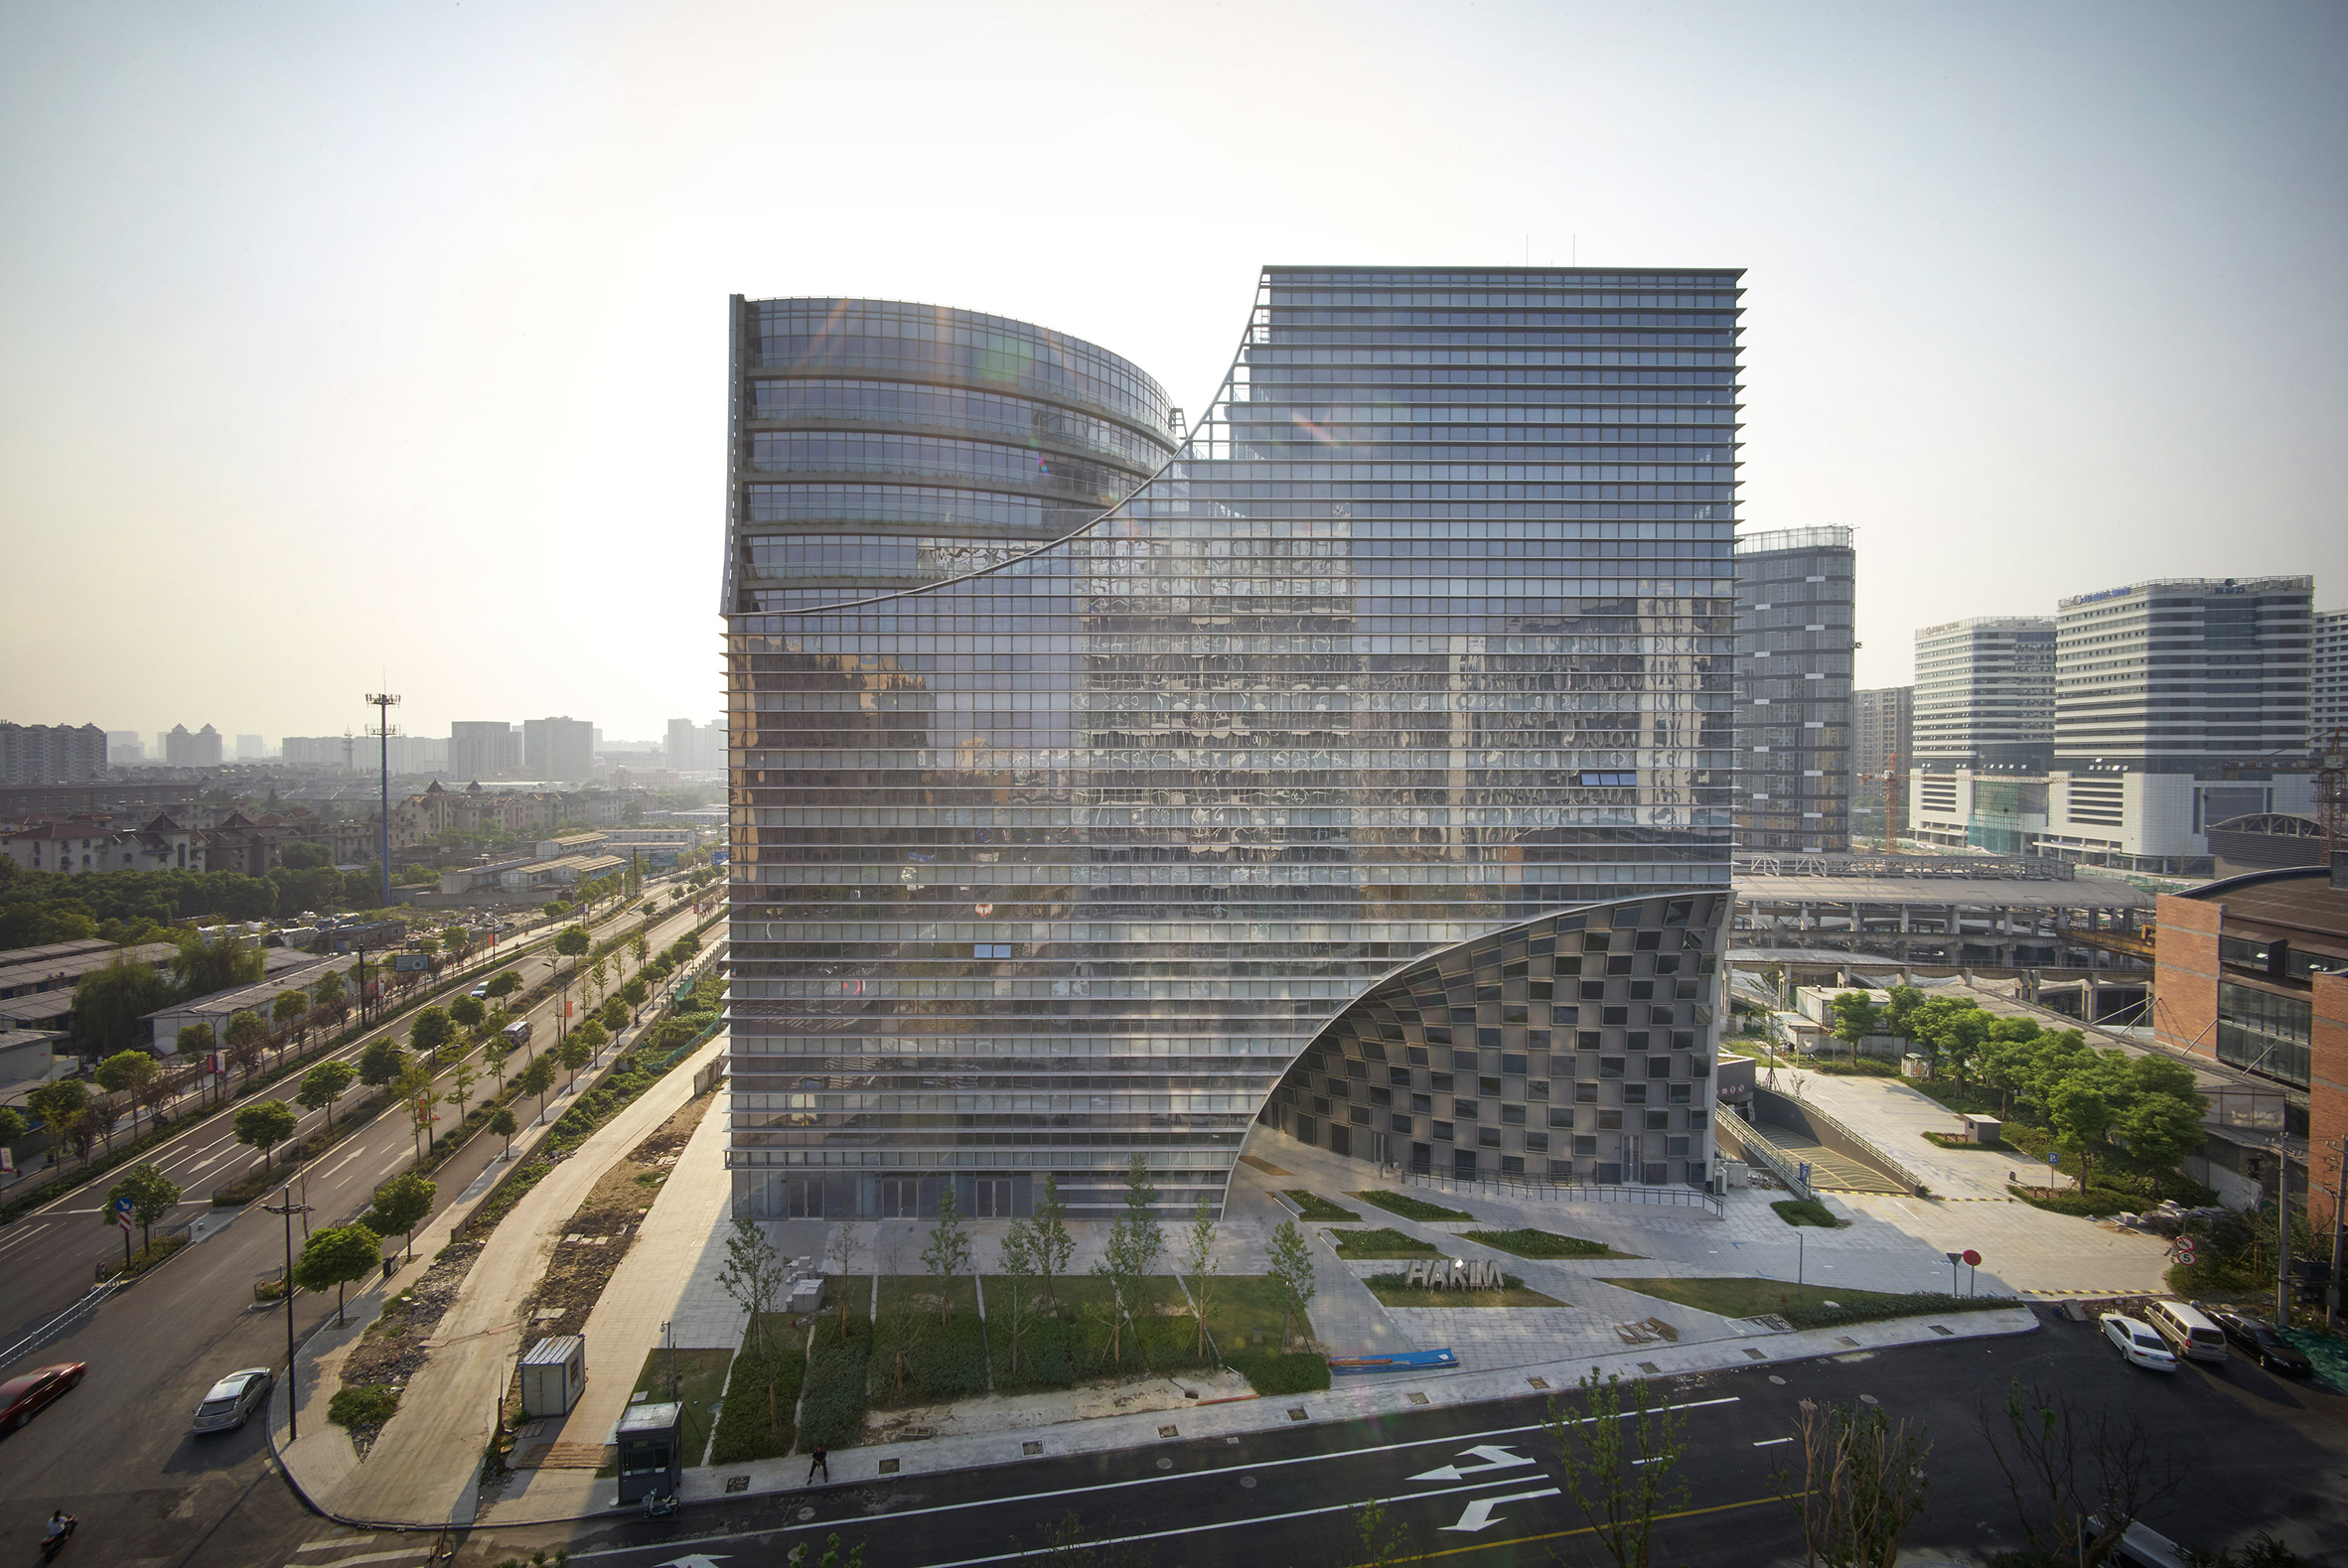 Arched chasms extend through Hangzhou office block by Julien De Smedt